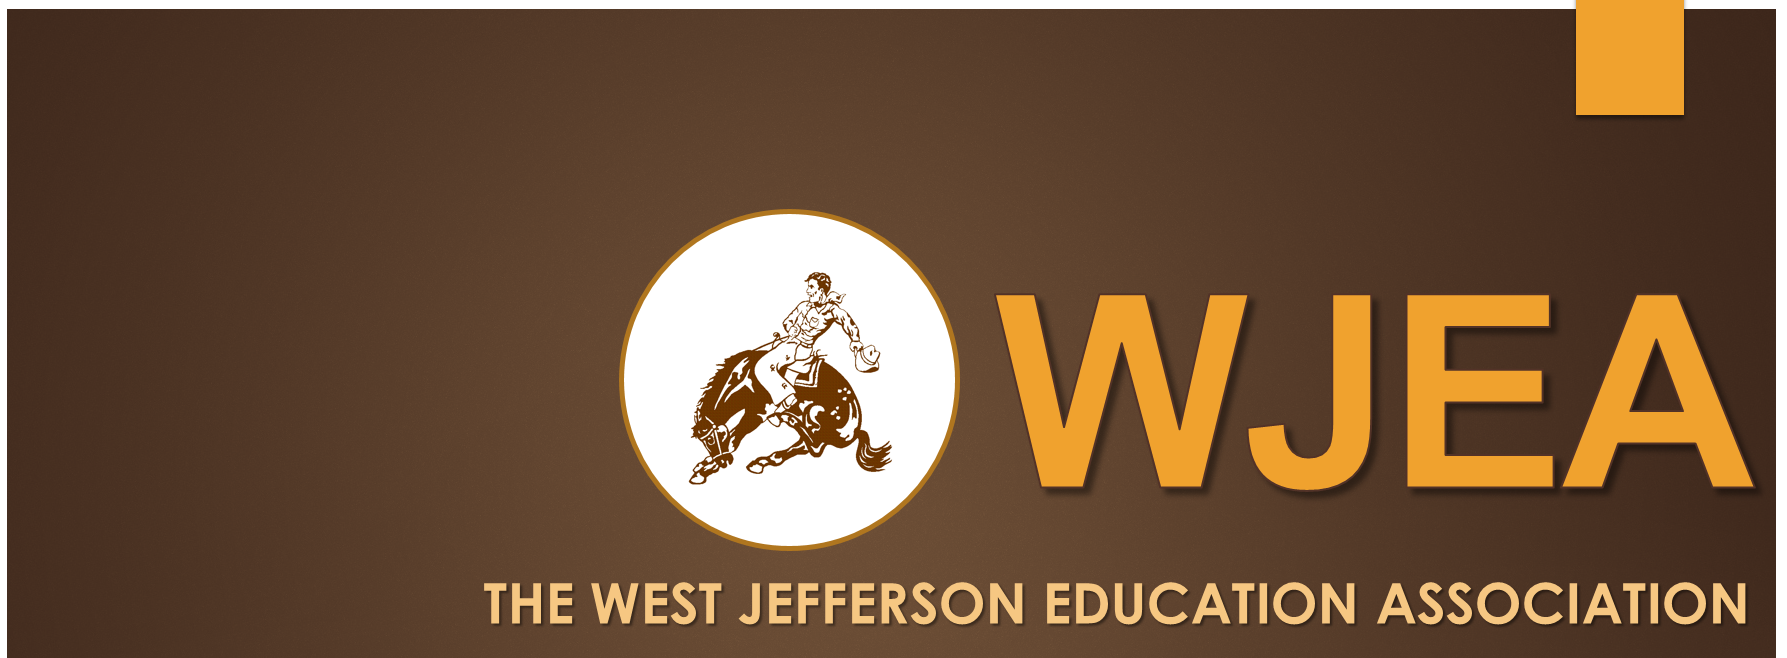 West Jefferson Education Association